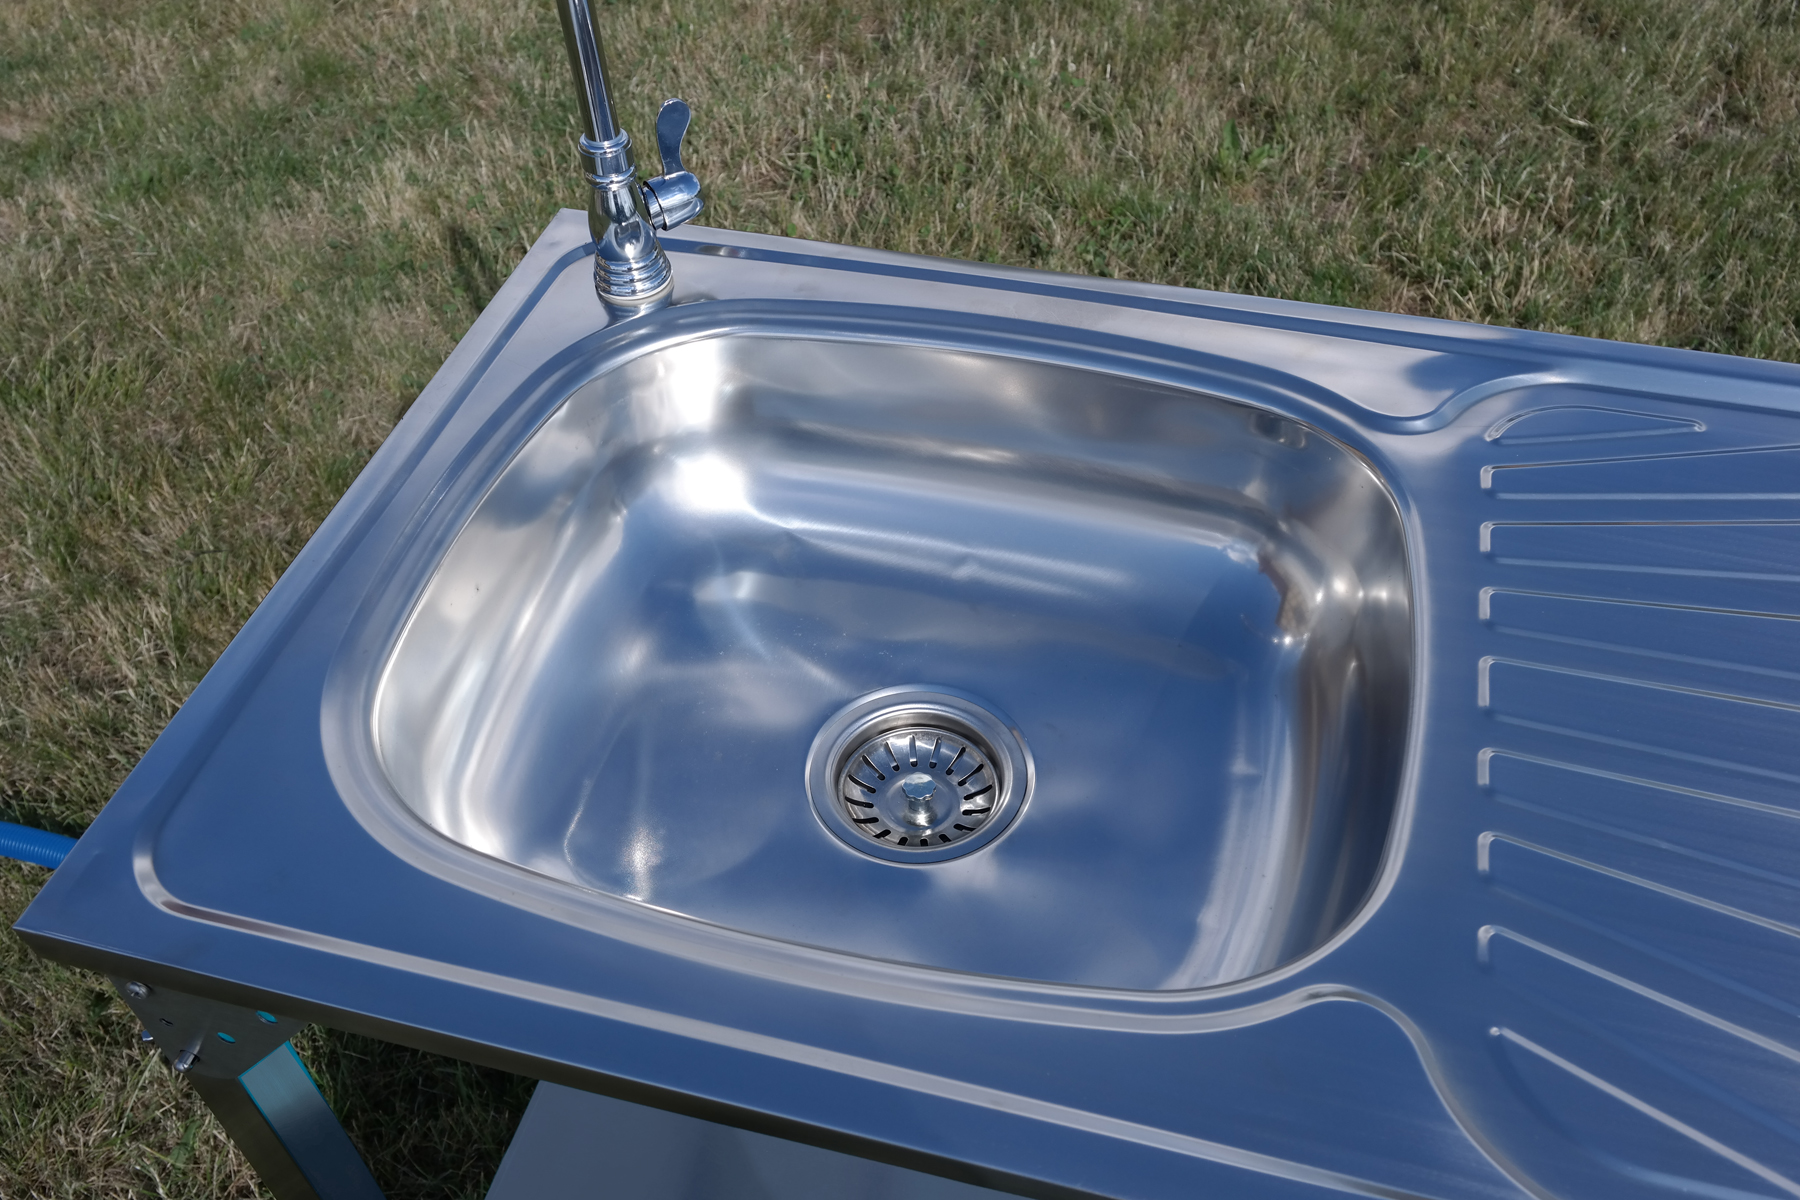 CAMPING SINK OUTDOOR KITCHEN STAINLESS STEEL DRAINING BOARD UNIT TAP ...